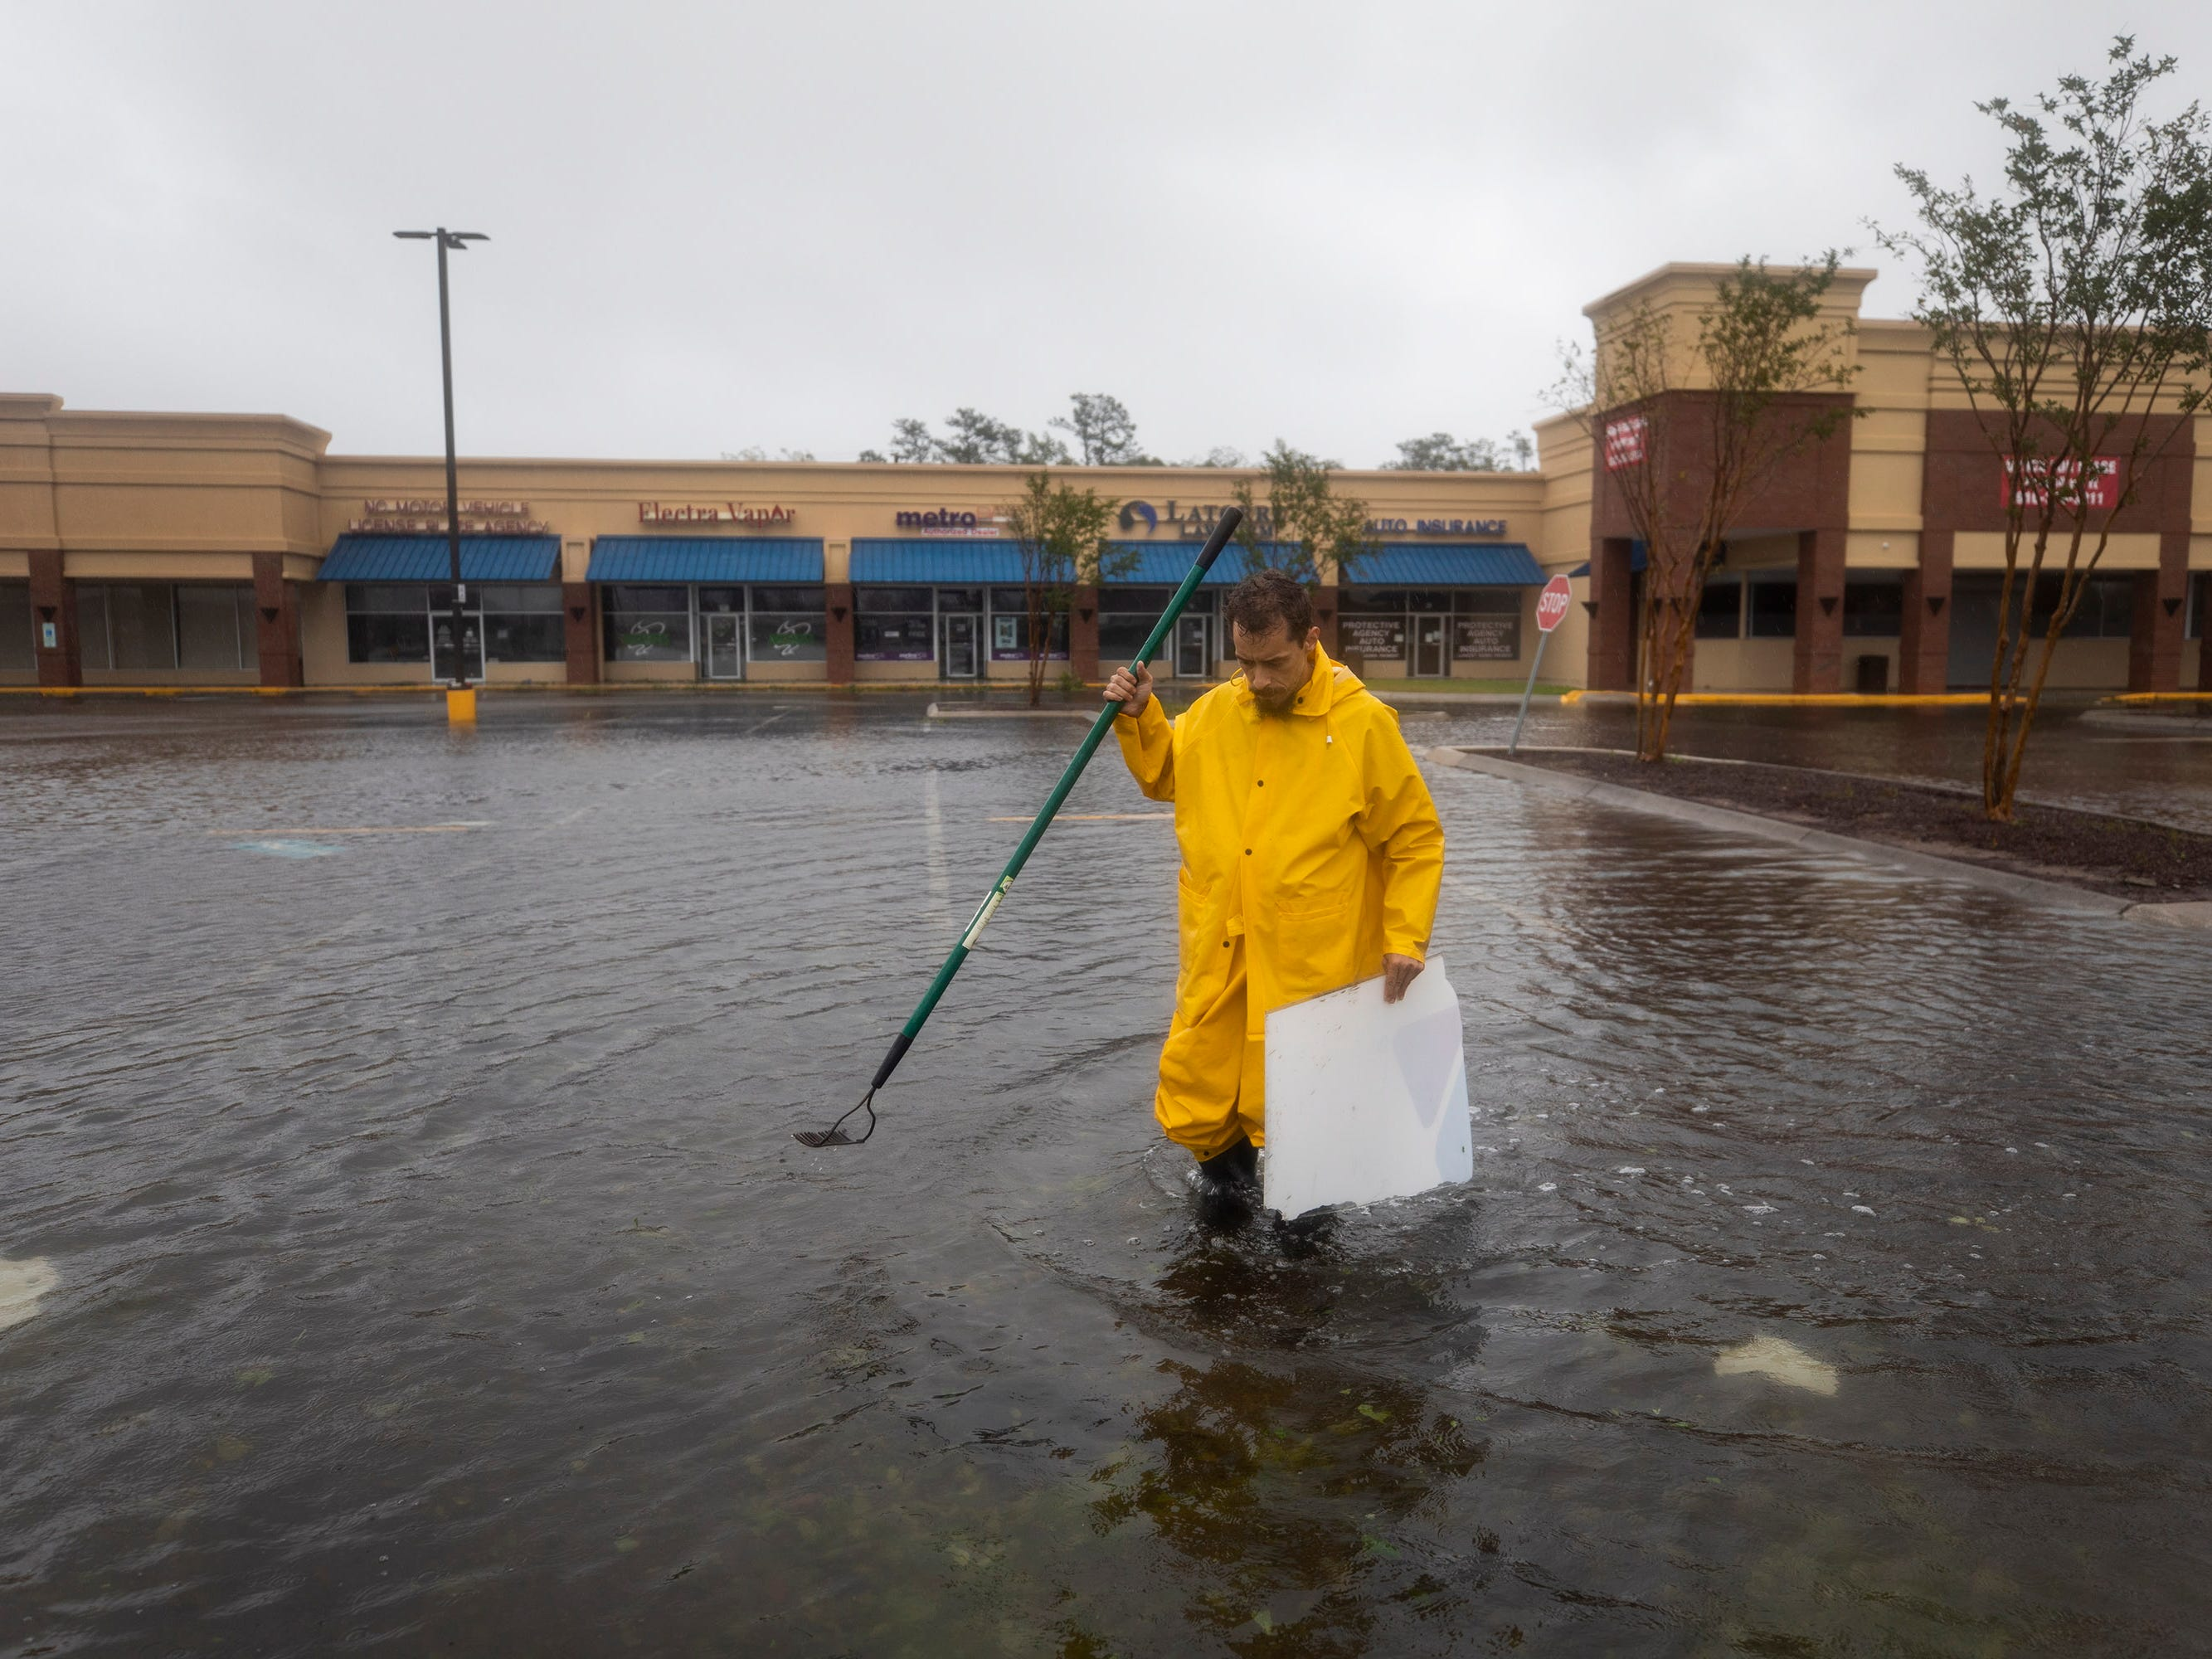 Jason Prevatte attempts to clear debris from a storm drain as Hurricane Florence comes ashore in Wilmington, N.C. Sept. 14, 2018.